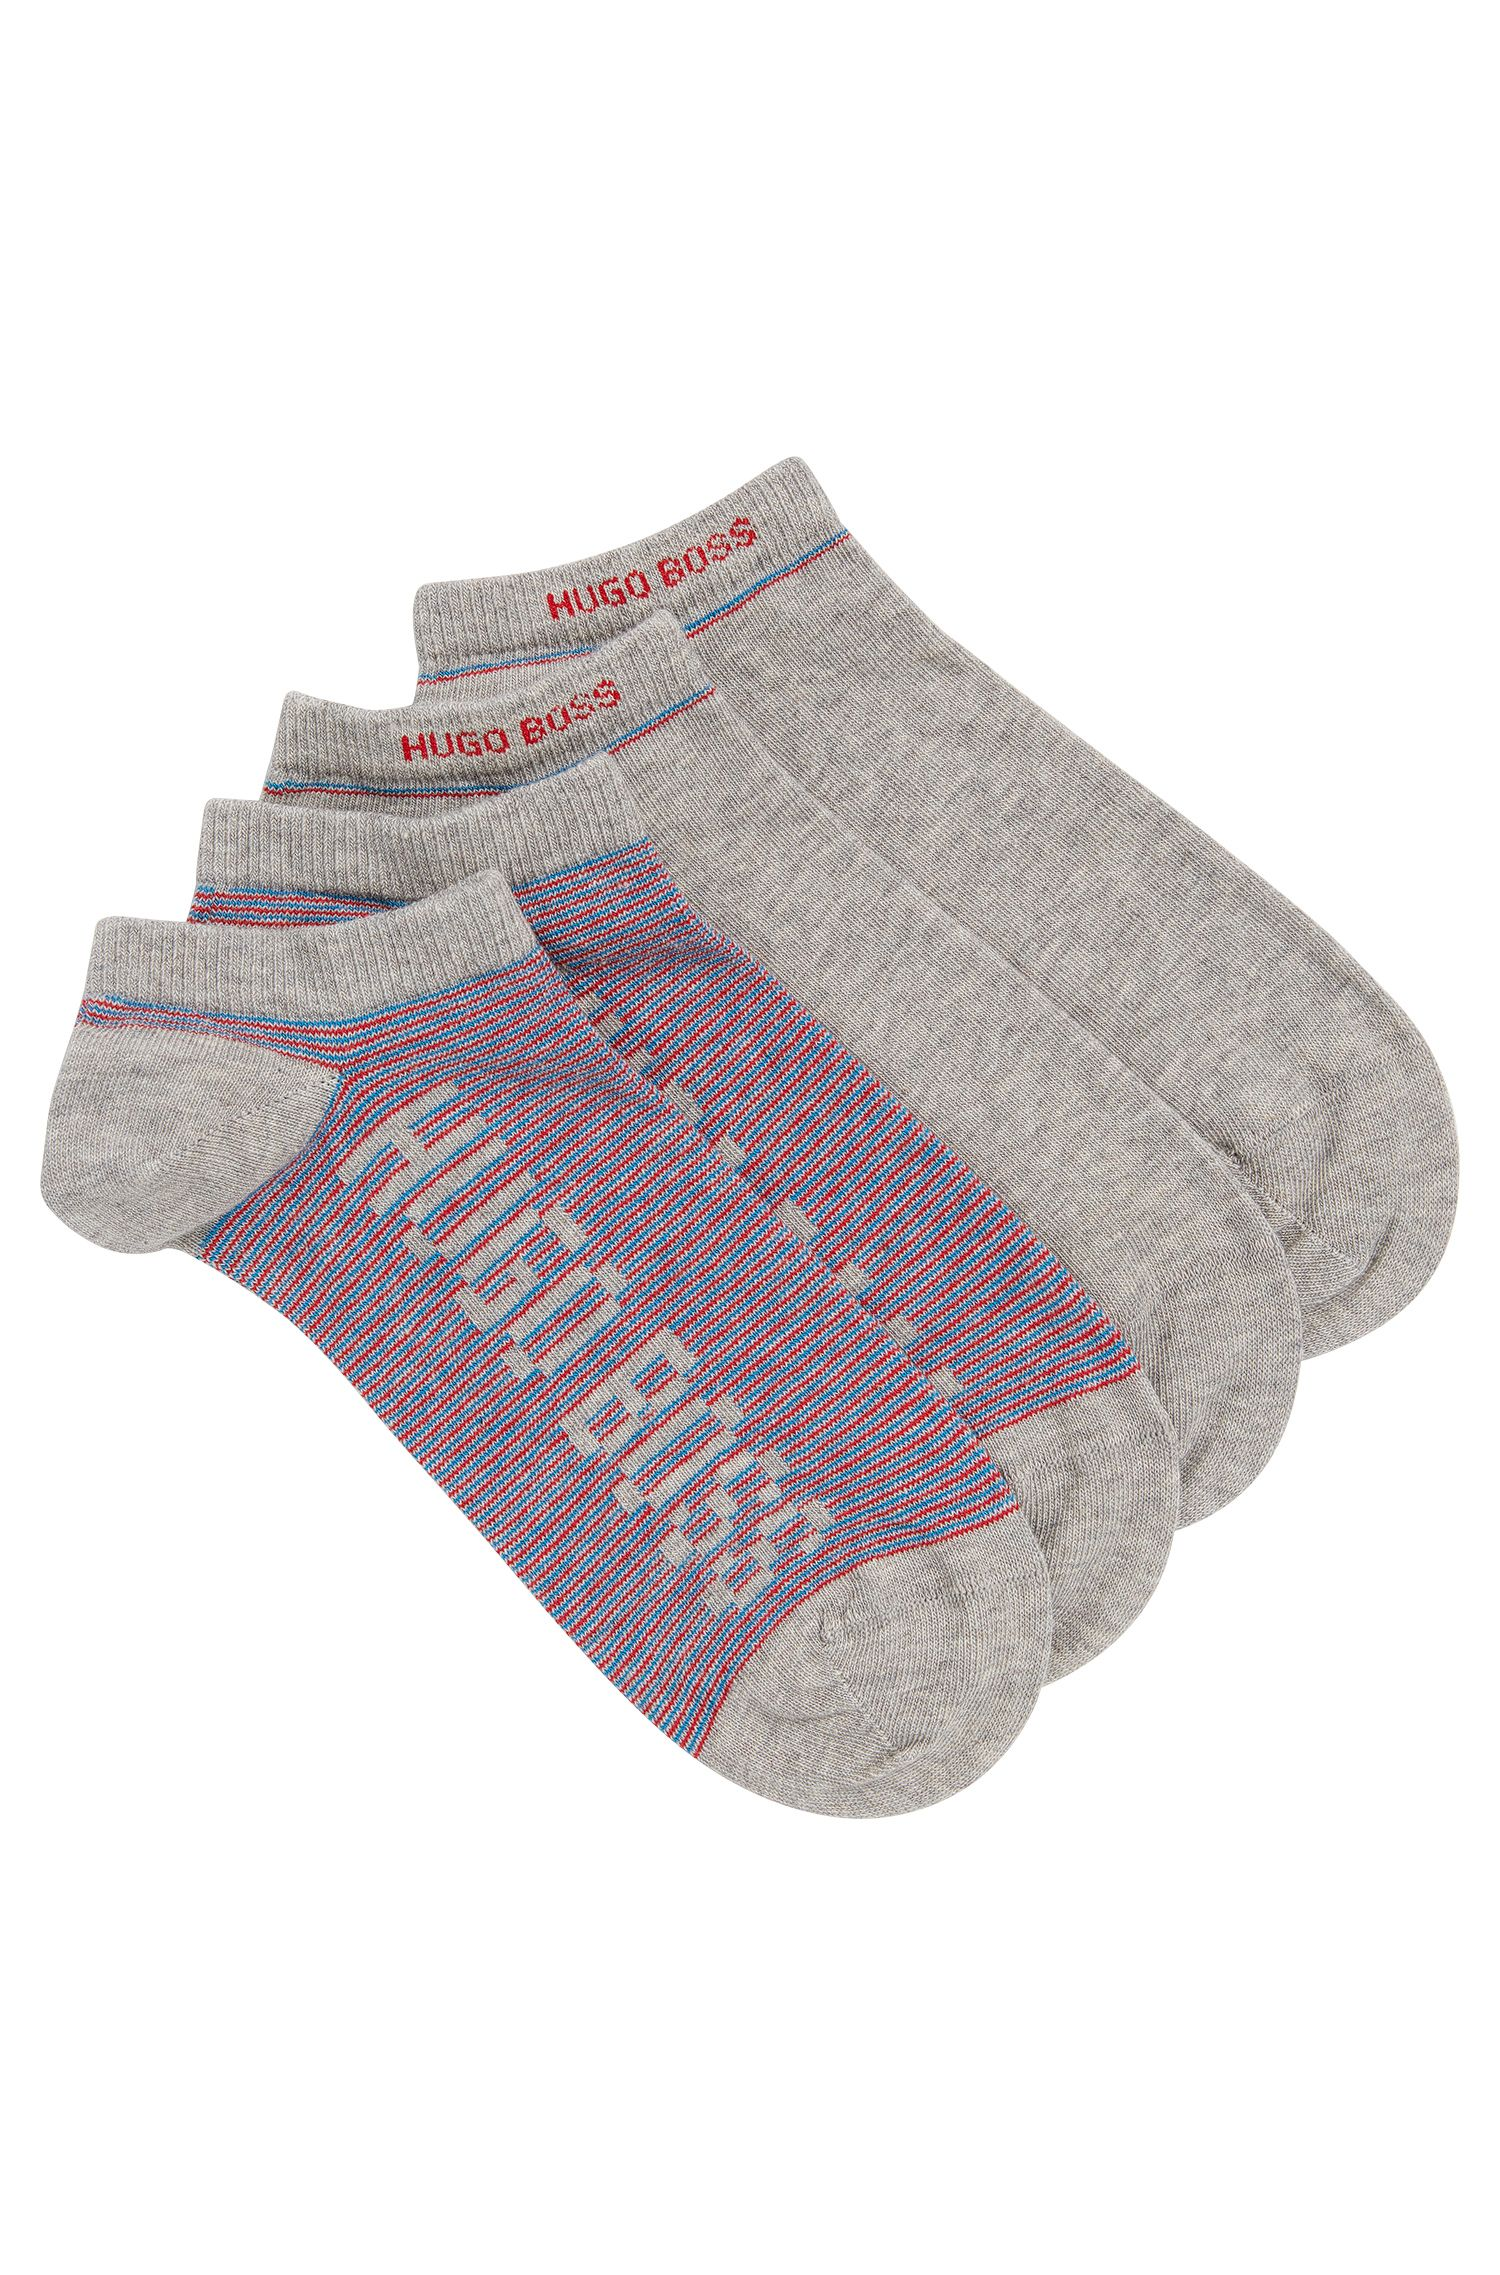 Two-pack of ankle socks blended with combed cotton